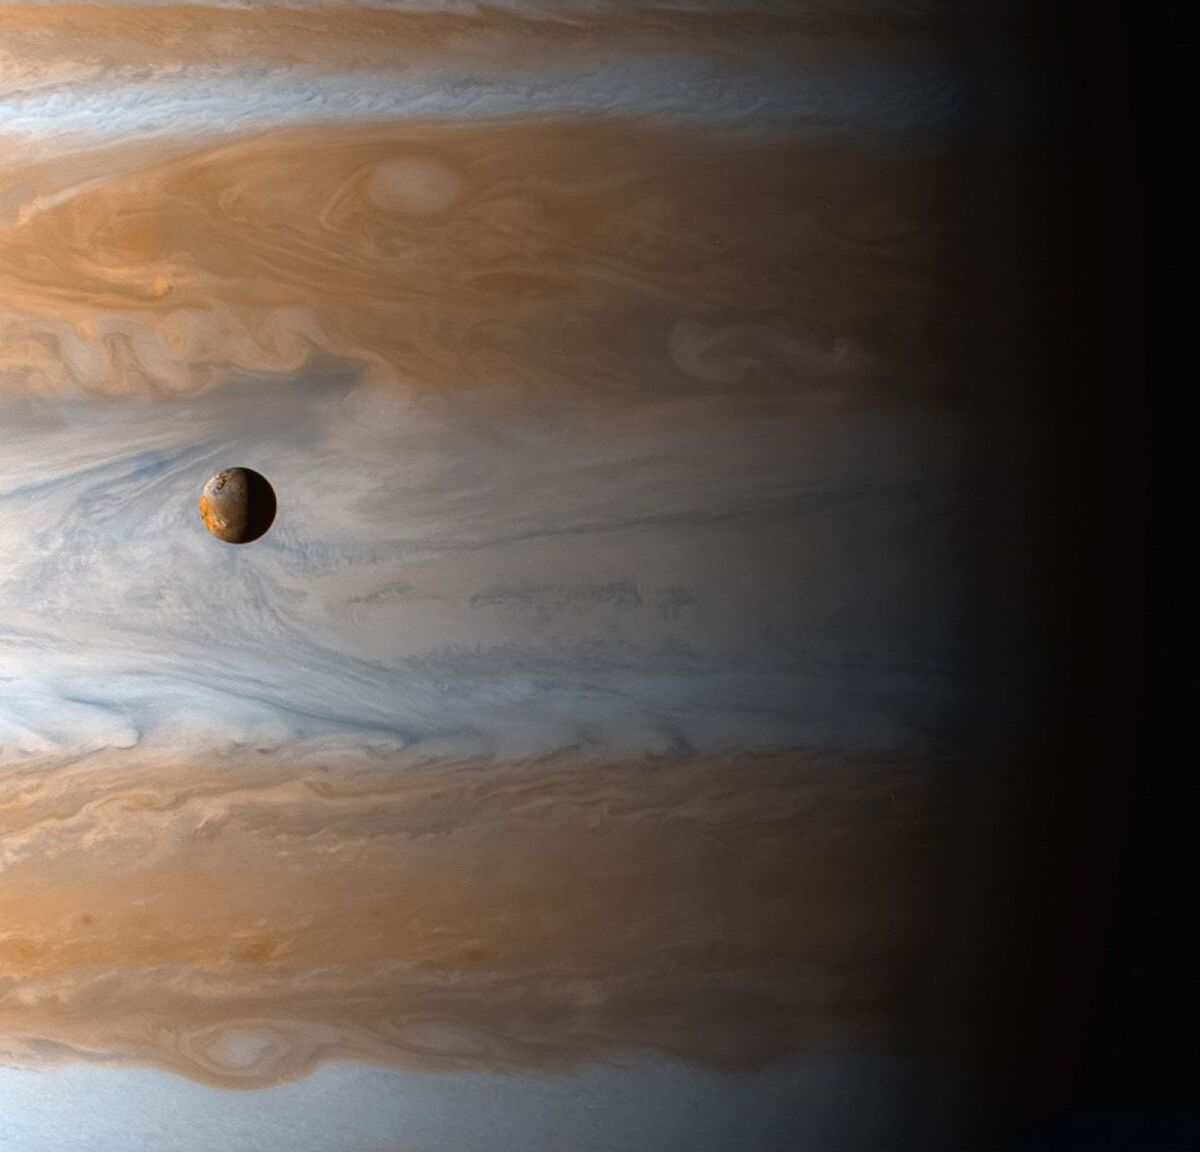 Jupiter's moon Io is dwarfed by the planet it orbits, as seen by the Cassini spacecraft en route to Saturn. Cassini's 13-year tour of the ringed planet changed the course of planetary exploration. © Courtesy of NASA.